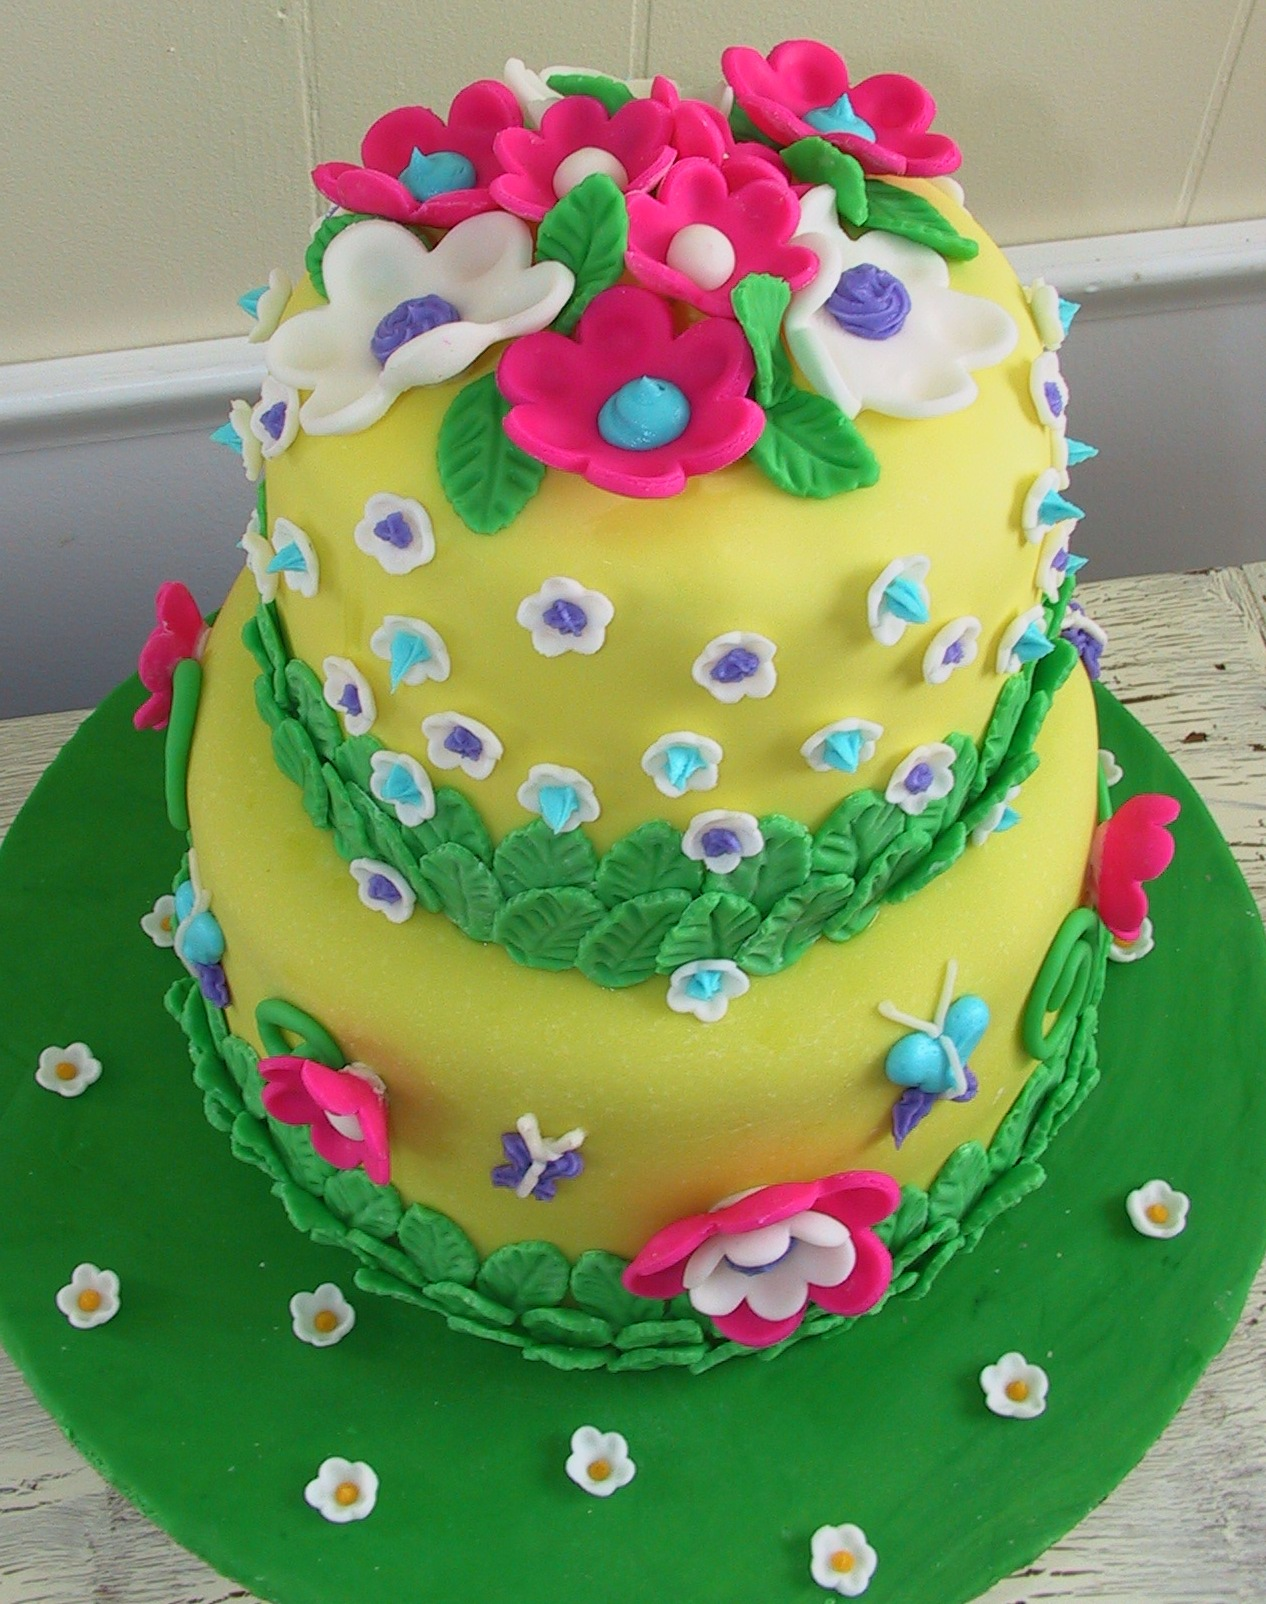 How To Make Icing Flower Decorations For Cakes